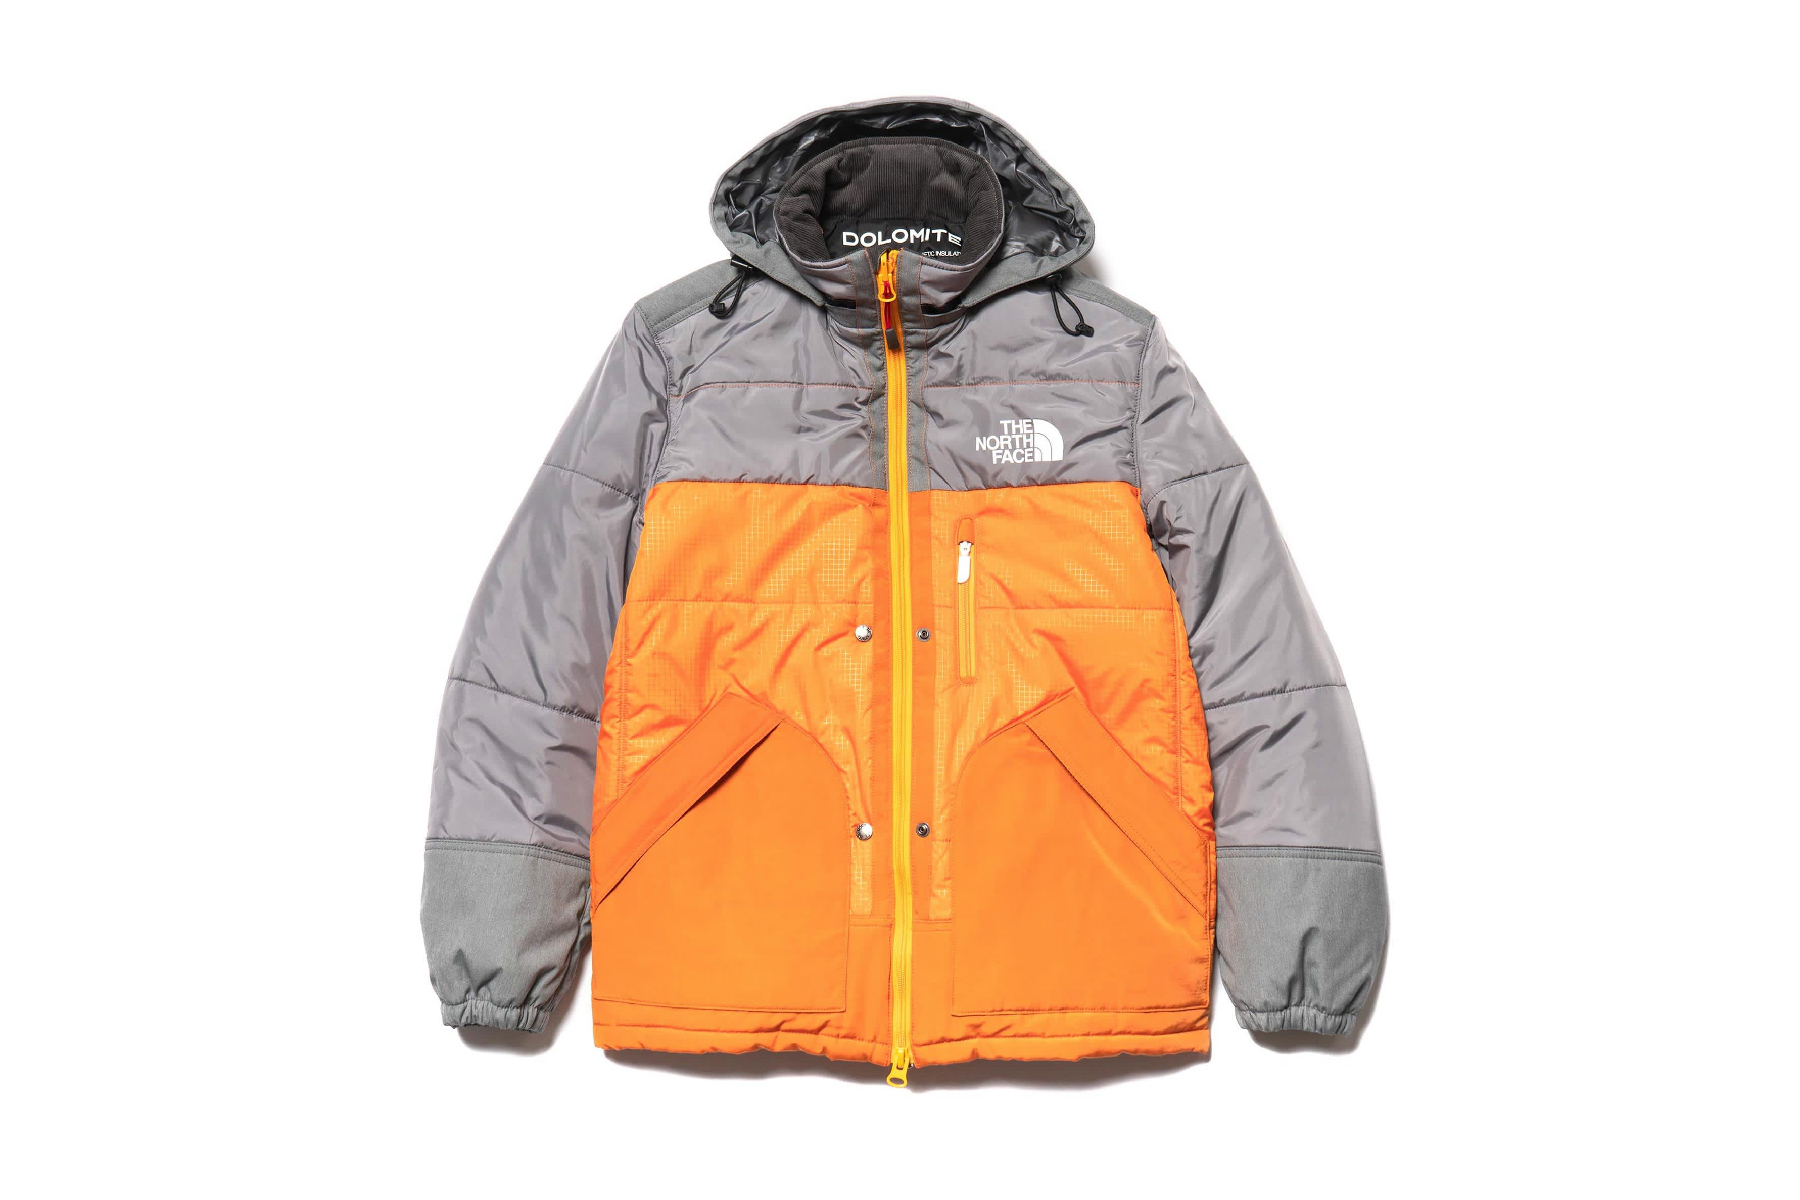 TNF x Junya Watanabe MAN Dolomite Sleeping Bag Jacket